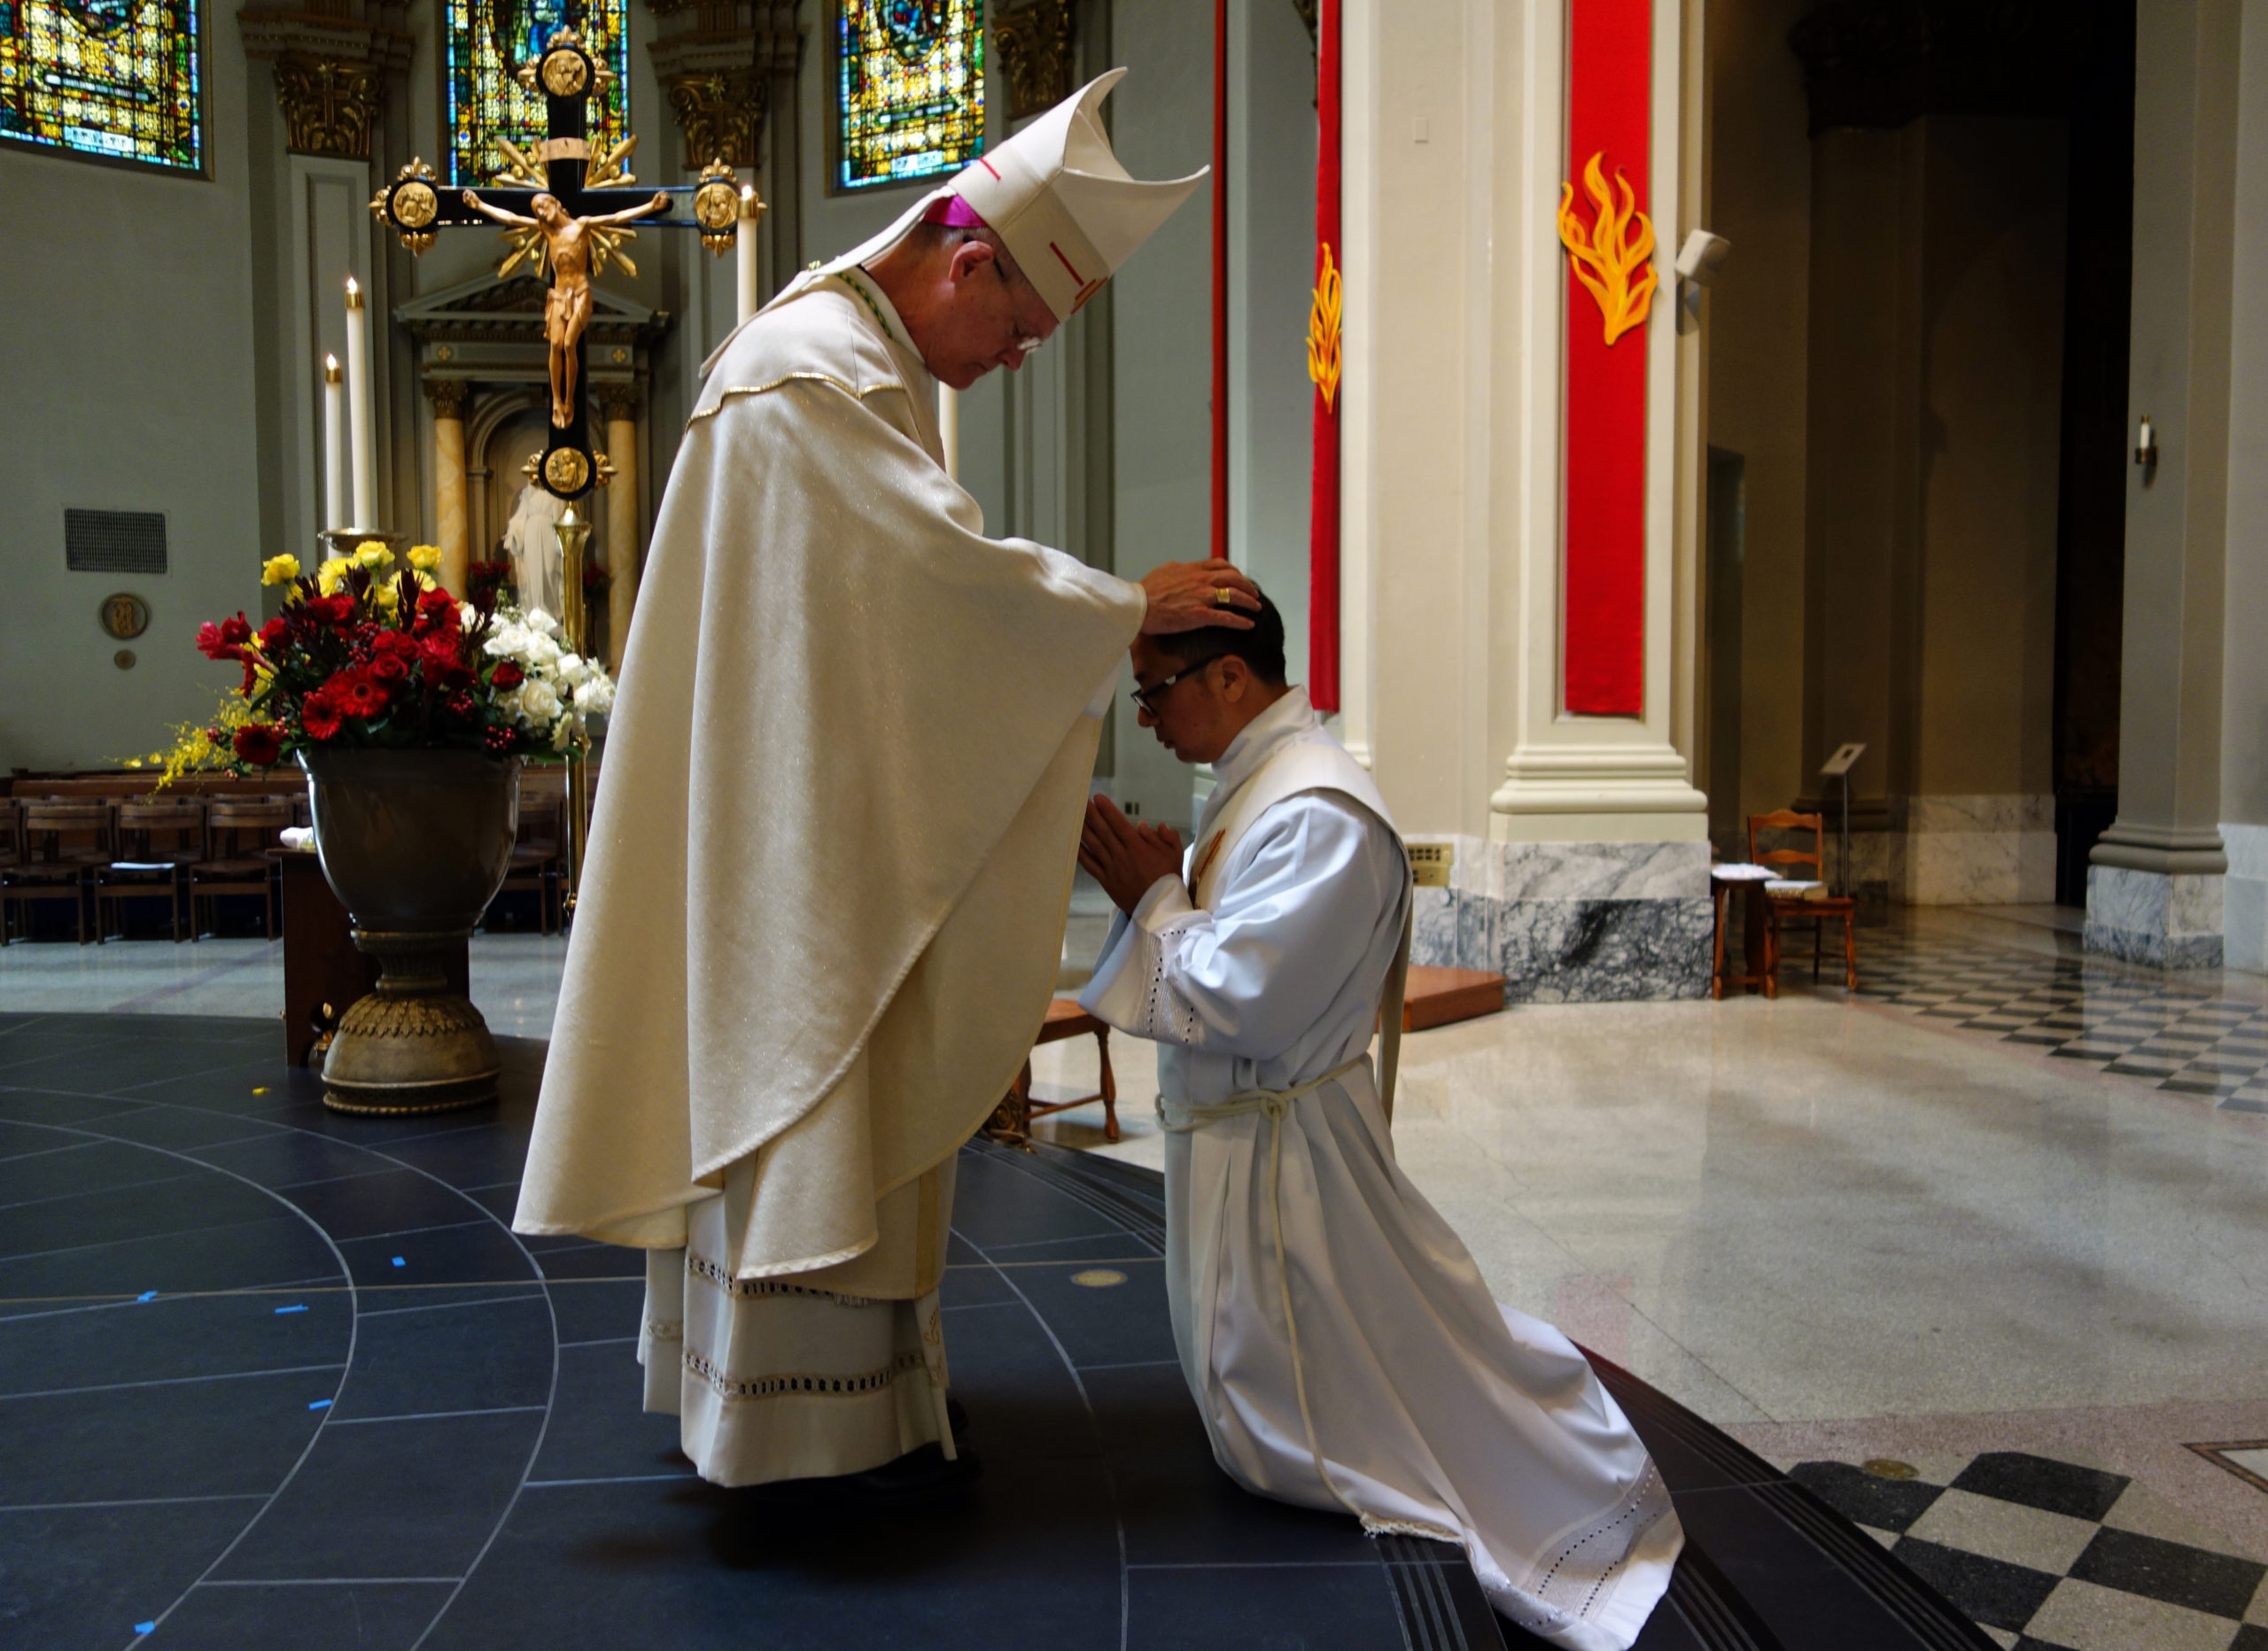 The laying on of hands by Archbishop Paul D. Etienne at the Ordination Rite of Thomas Tran, June 6, 2020 at St. James Cathedral, Seattle. Photo by M. Laughlin